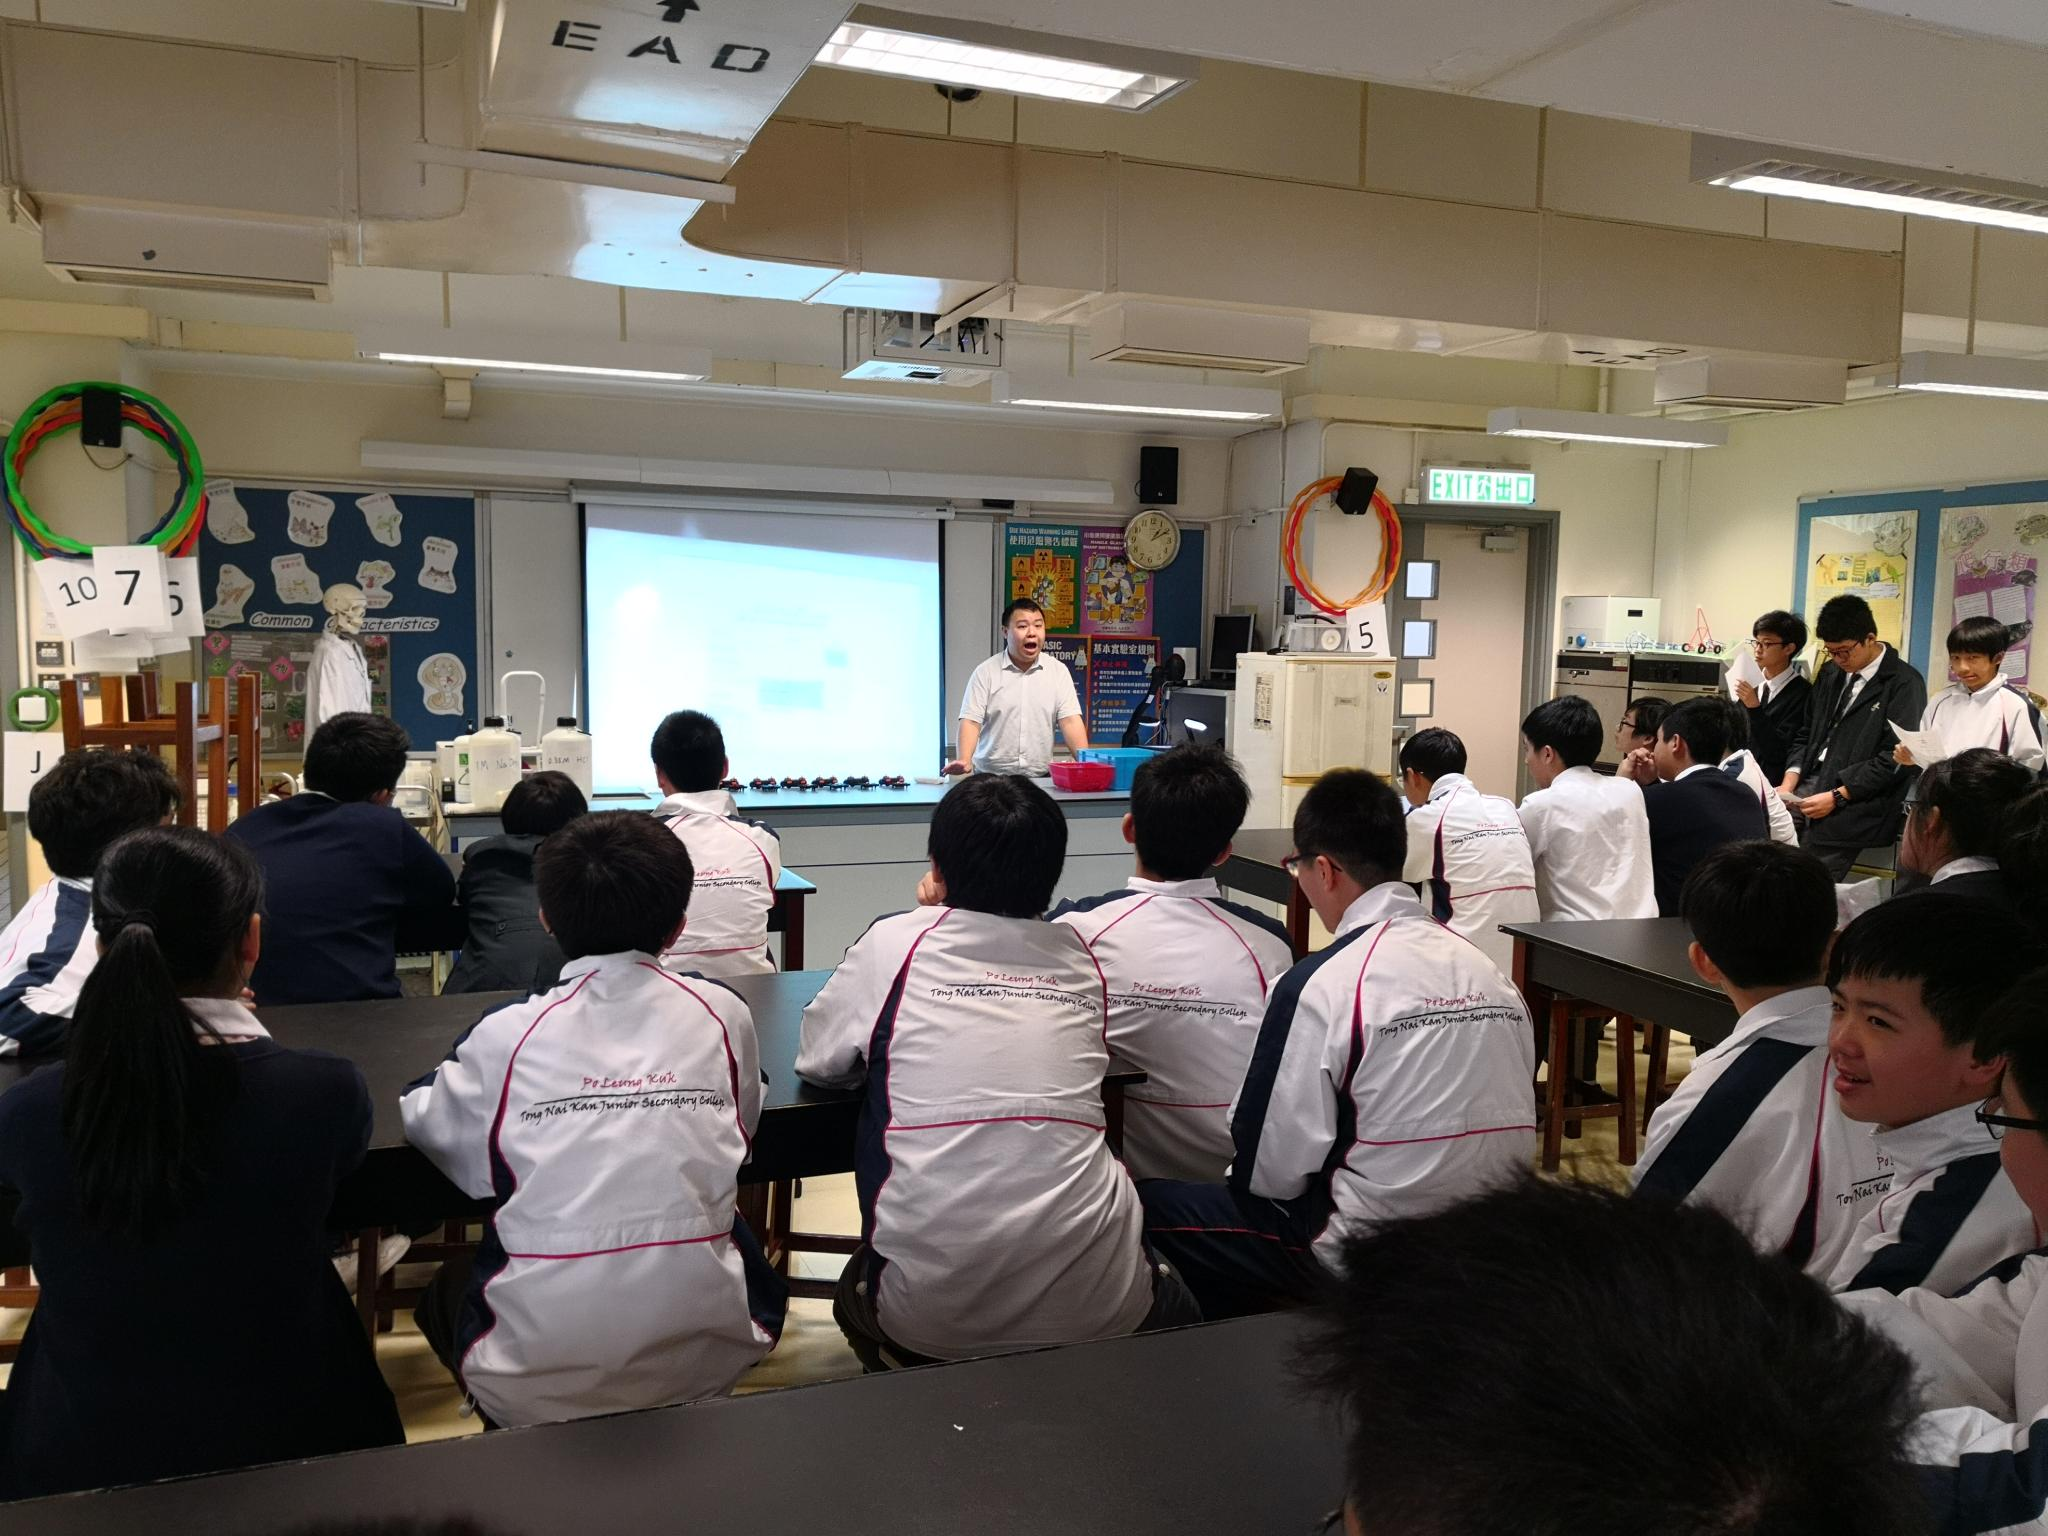 Participants of each class were listening to the instructions in the briefing session.